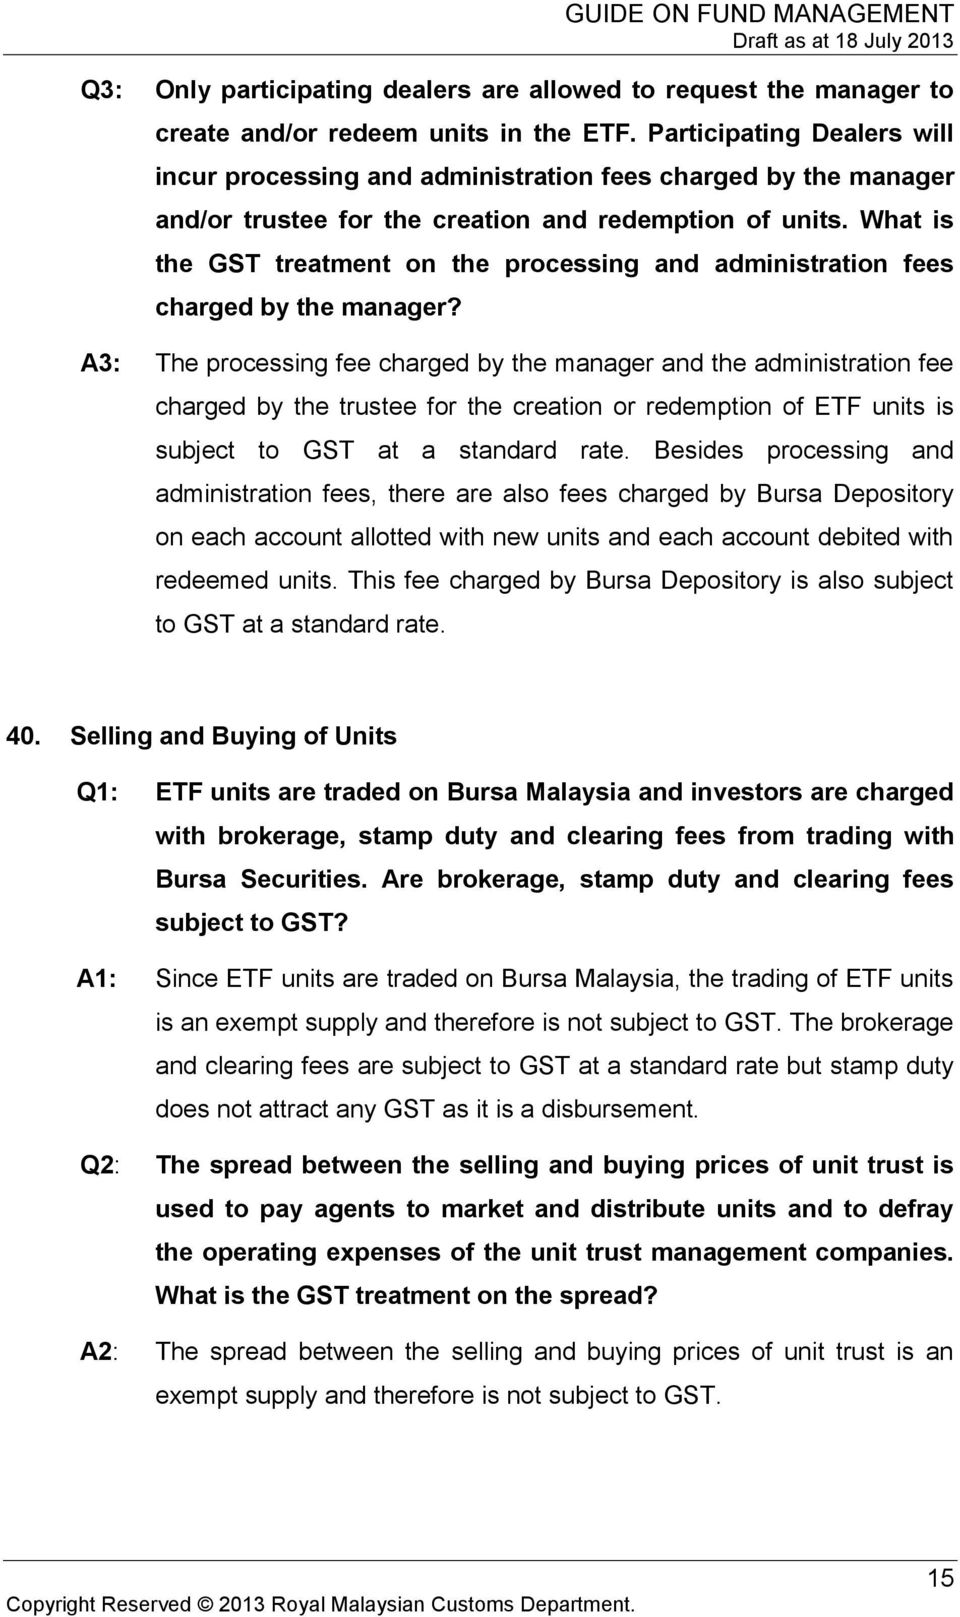 What is the GST treatment on the processing and administration fees charged by the manager?